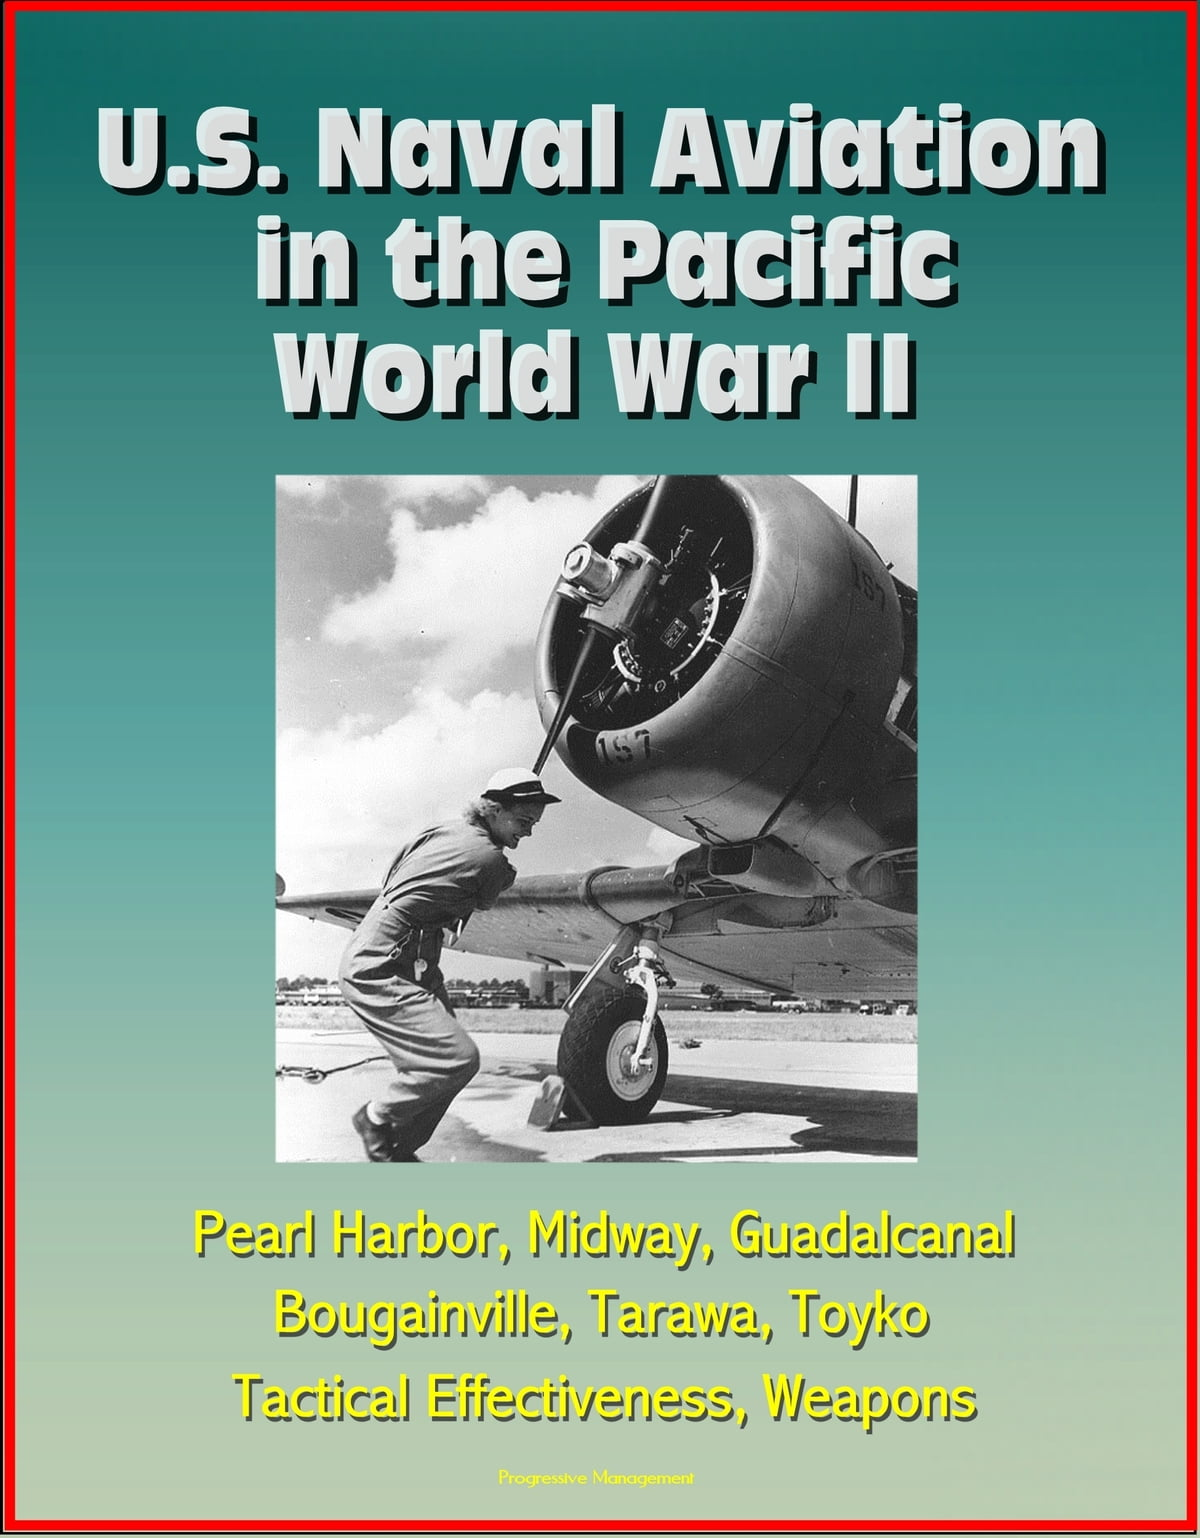 U S  Naval Aviation in the Pacific: World War II - Pearl Harbor, Midway,  Guadalcanal, Bougainville, Tarawa, Toyko, Tactical Effectiveness, Weapons